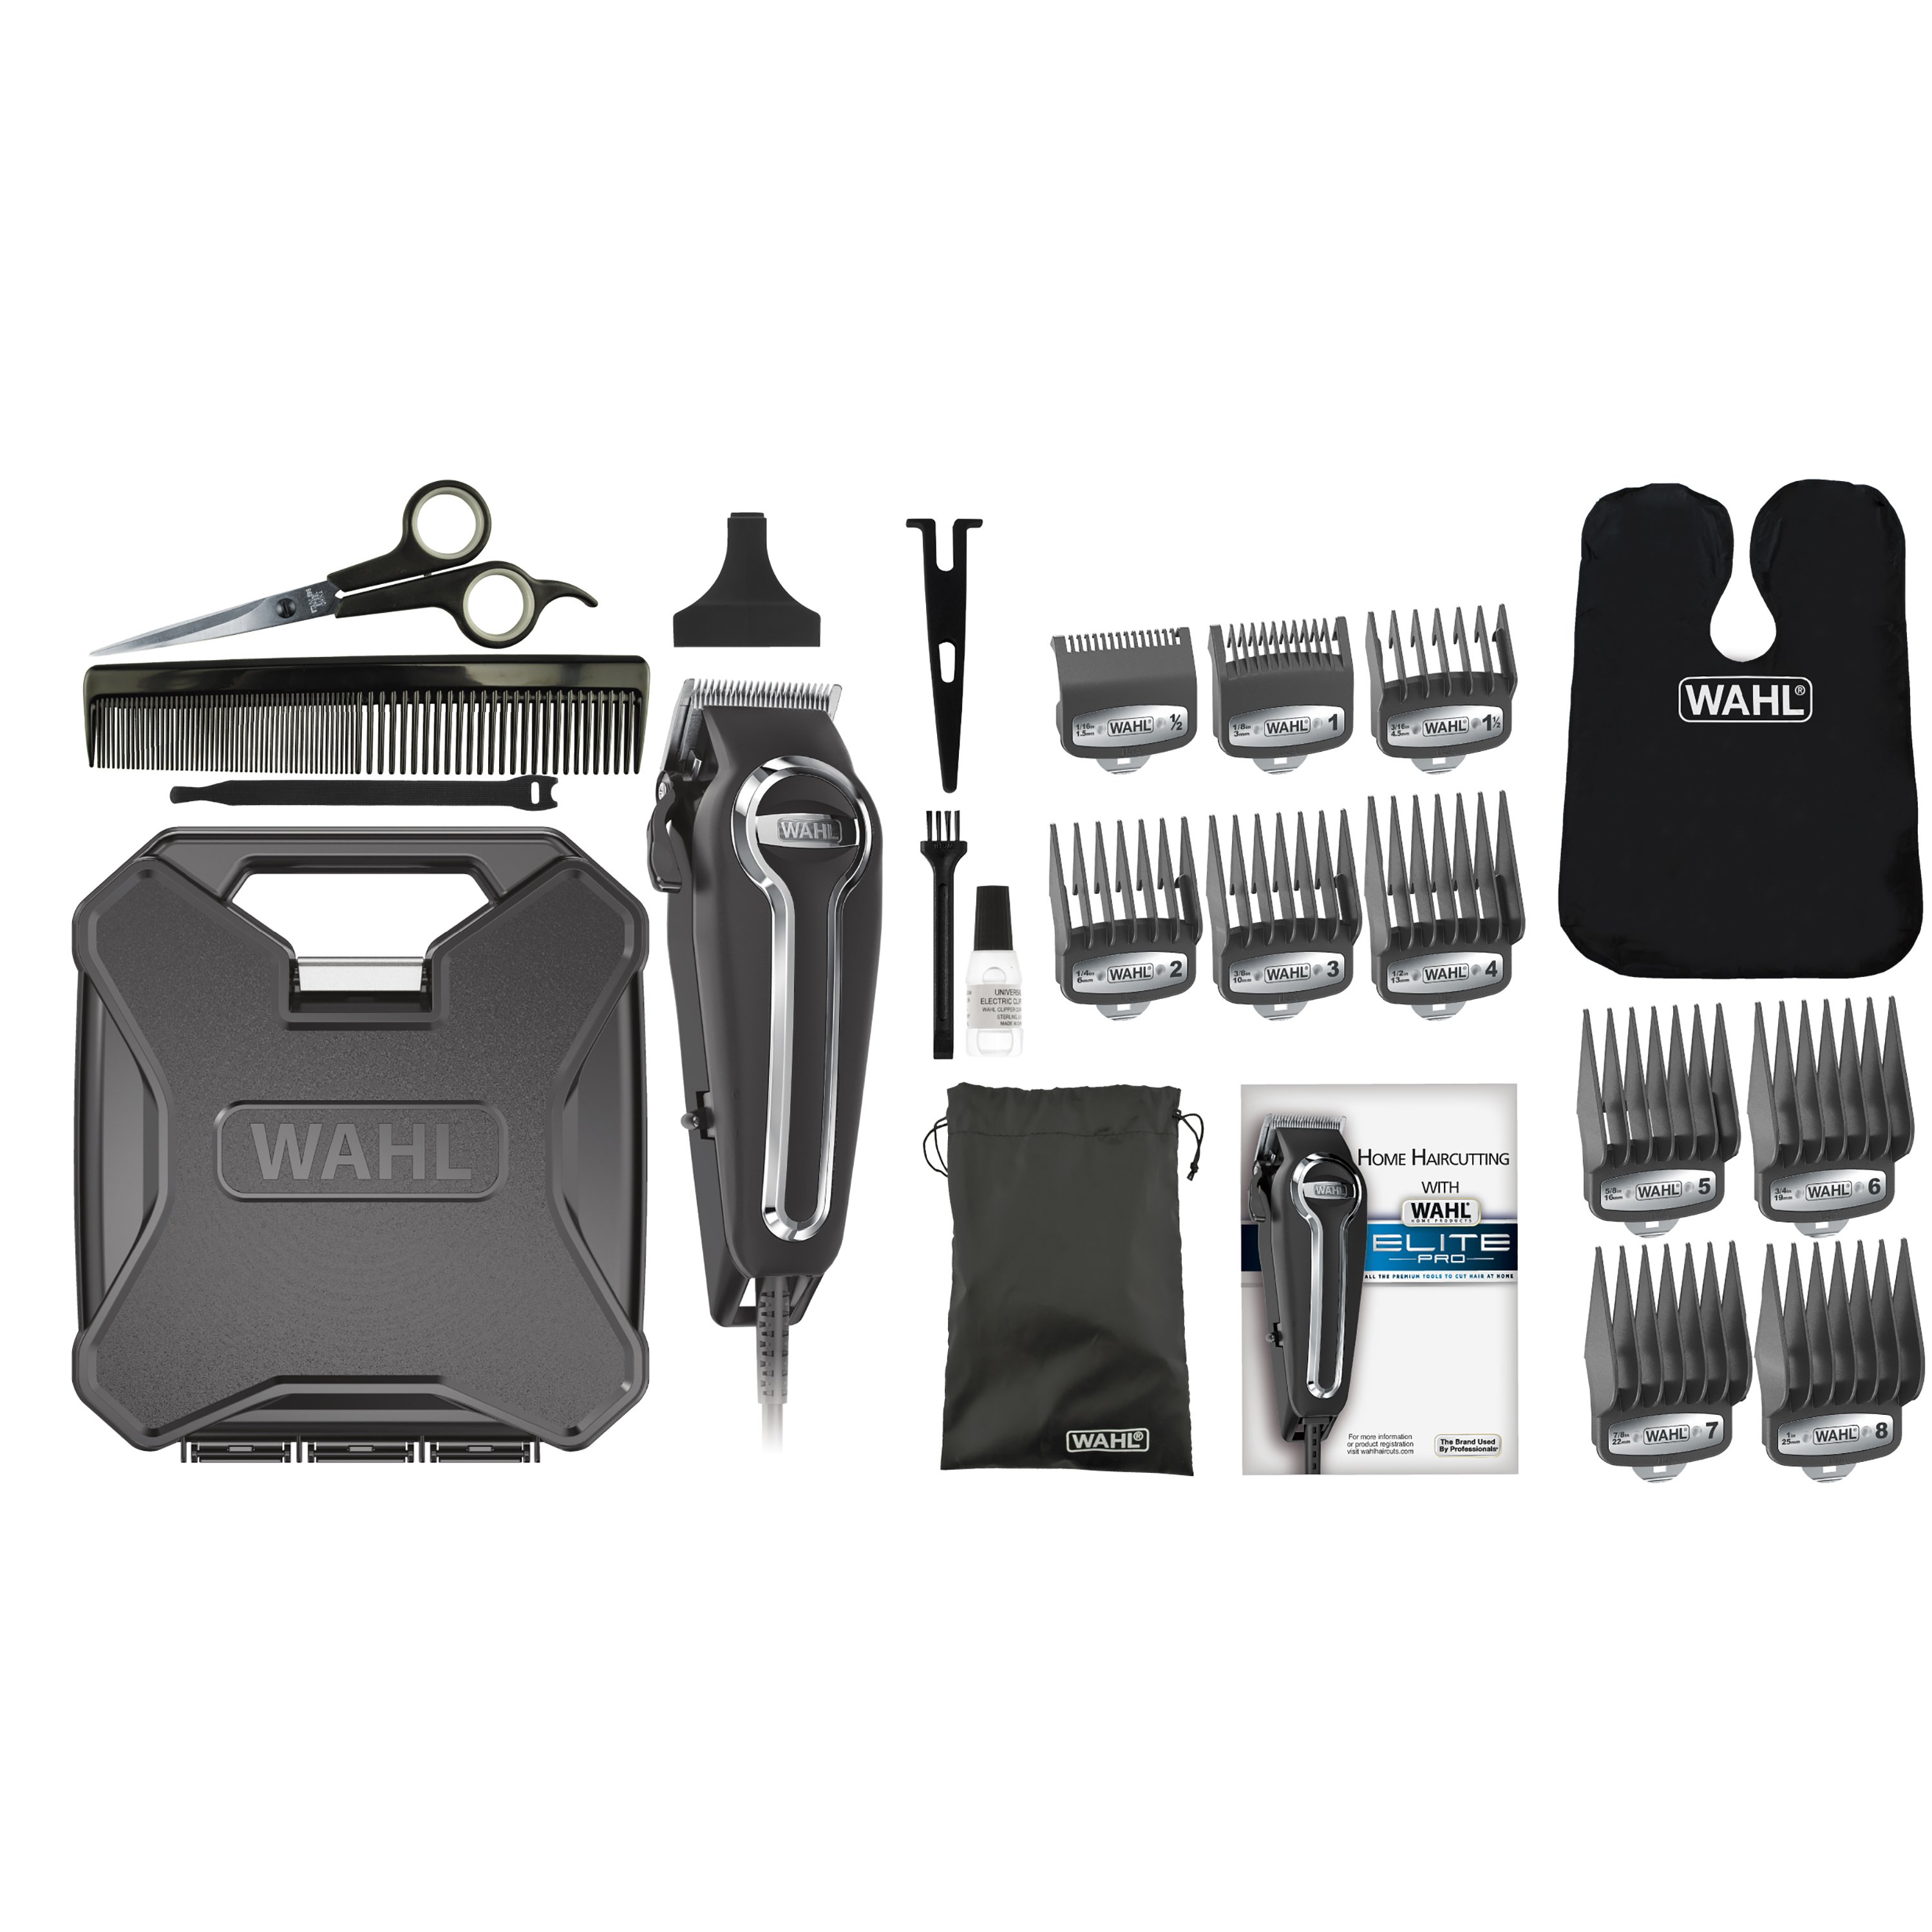 Wahl Elite Pro Complete High Performance Hair Clippers Haircut Kit, Black/Chrome 21 pieces Model 79602